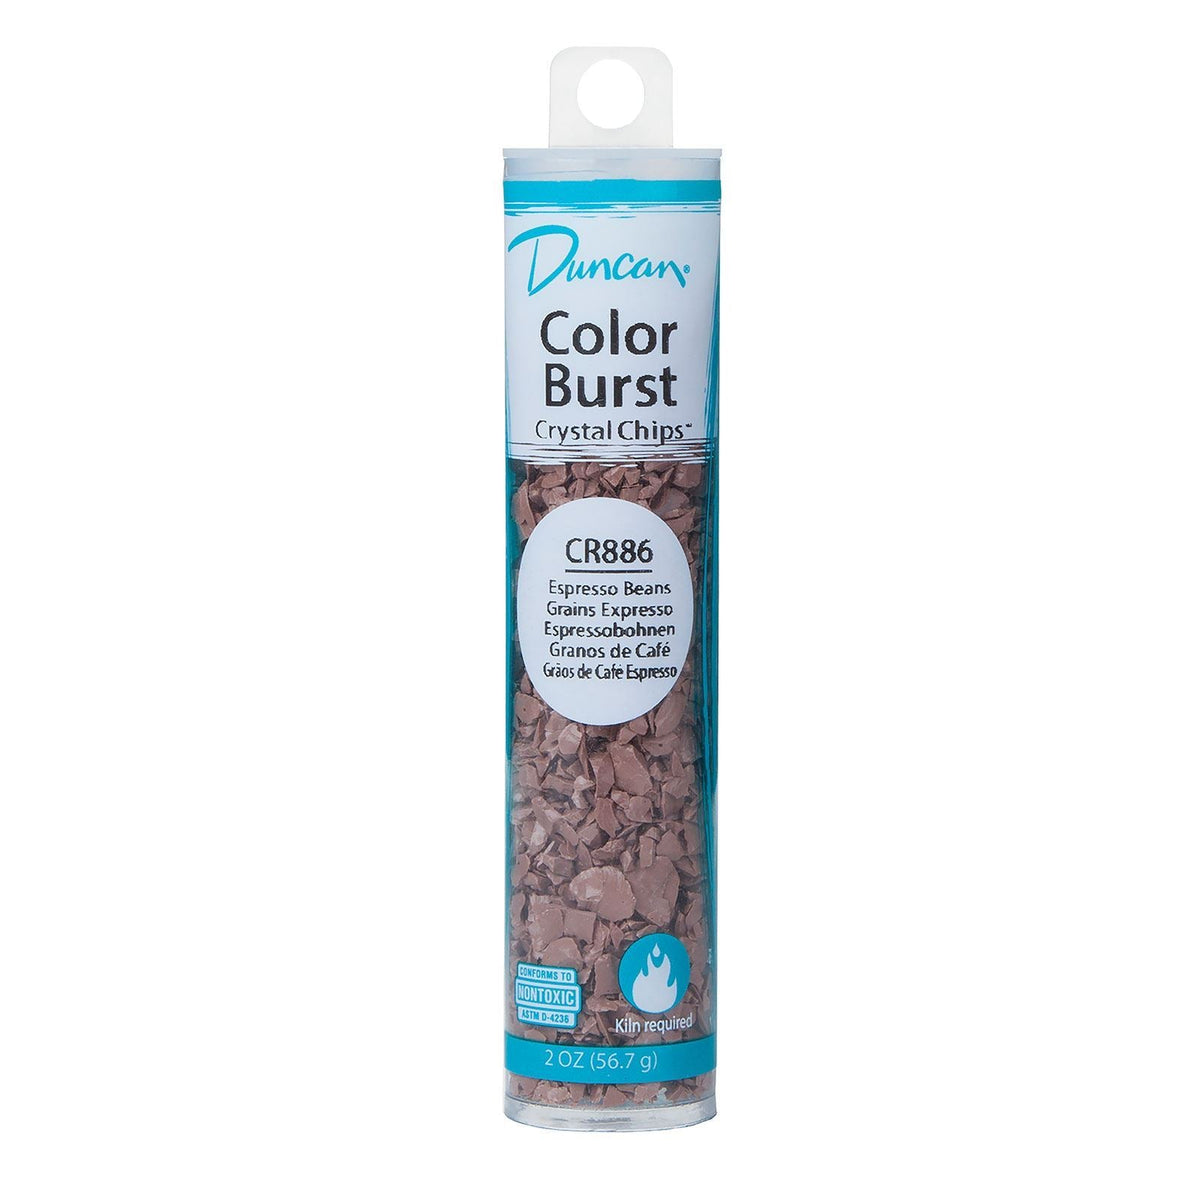 Duncan CR886 Espresso Beans Color Burst Crystal Chips, 2 oz.